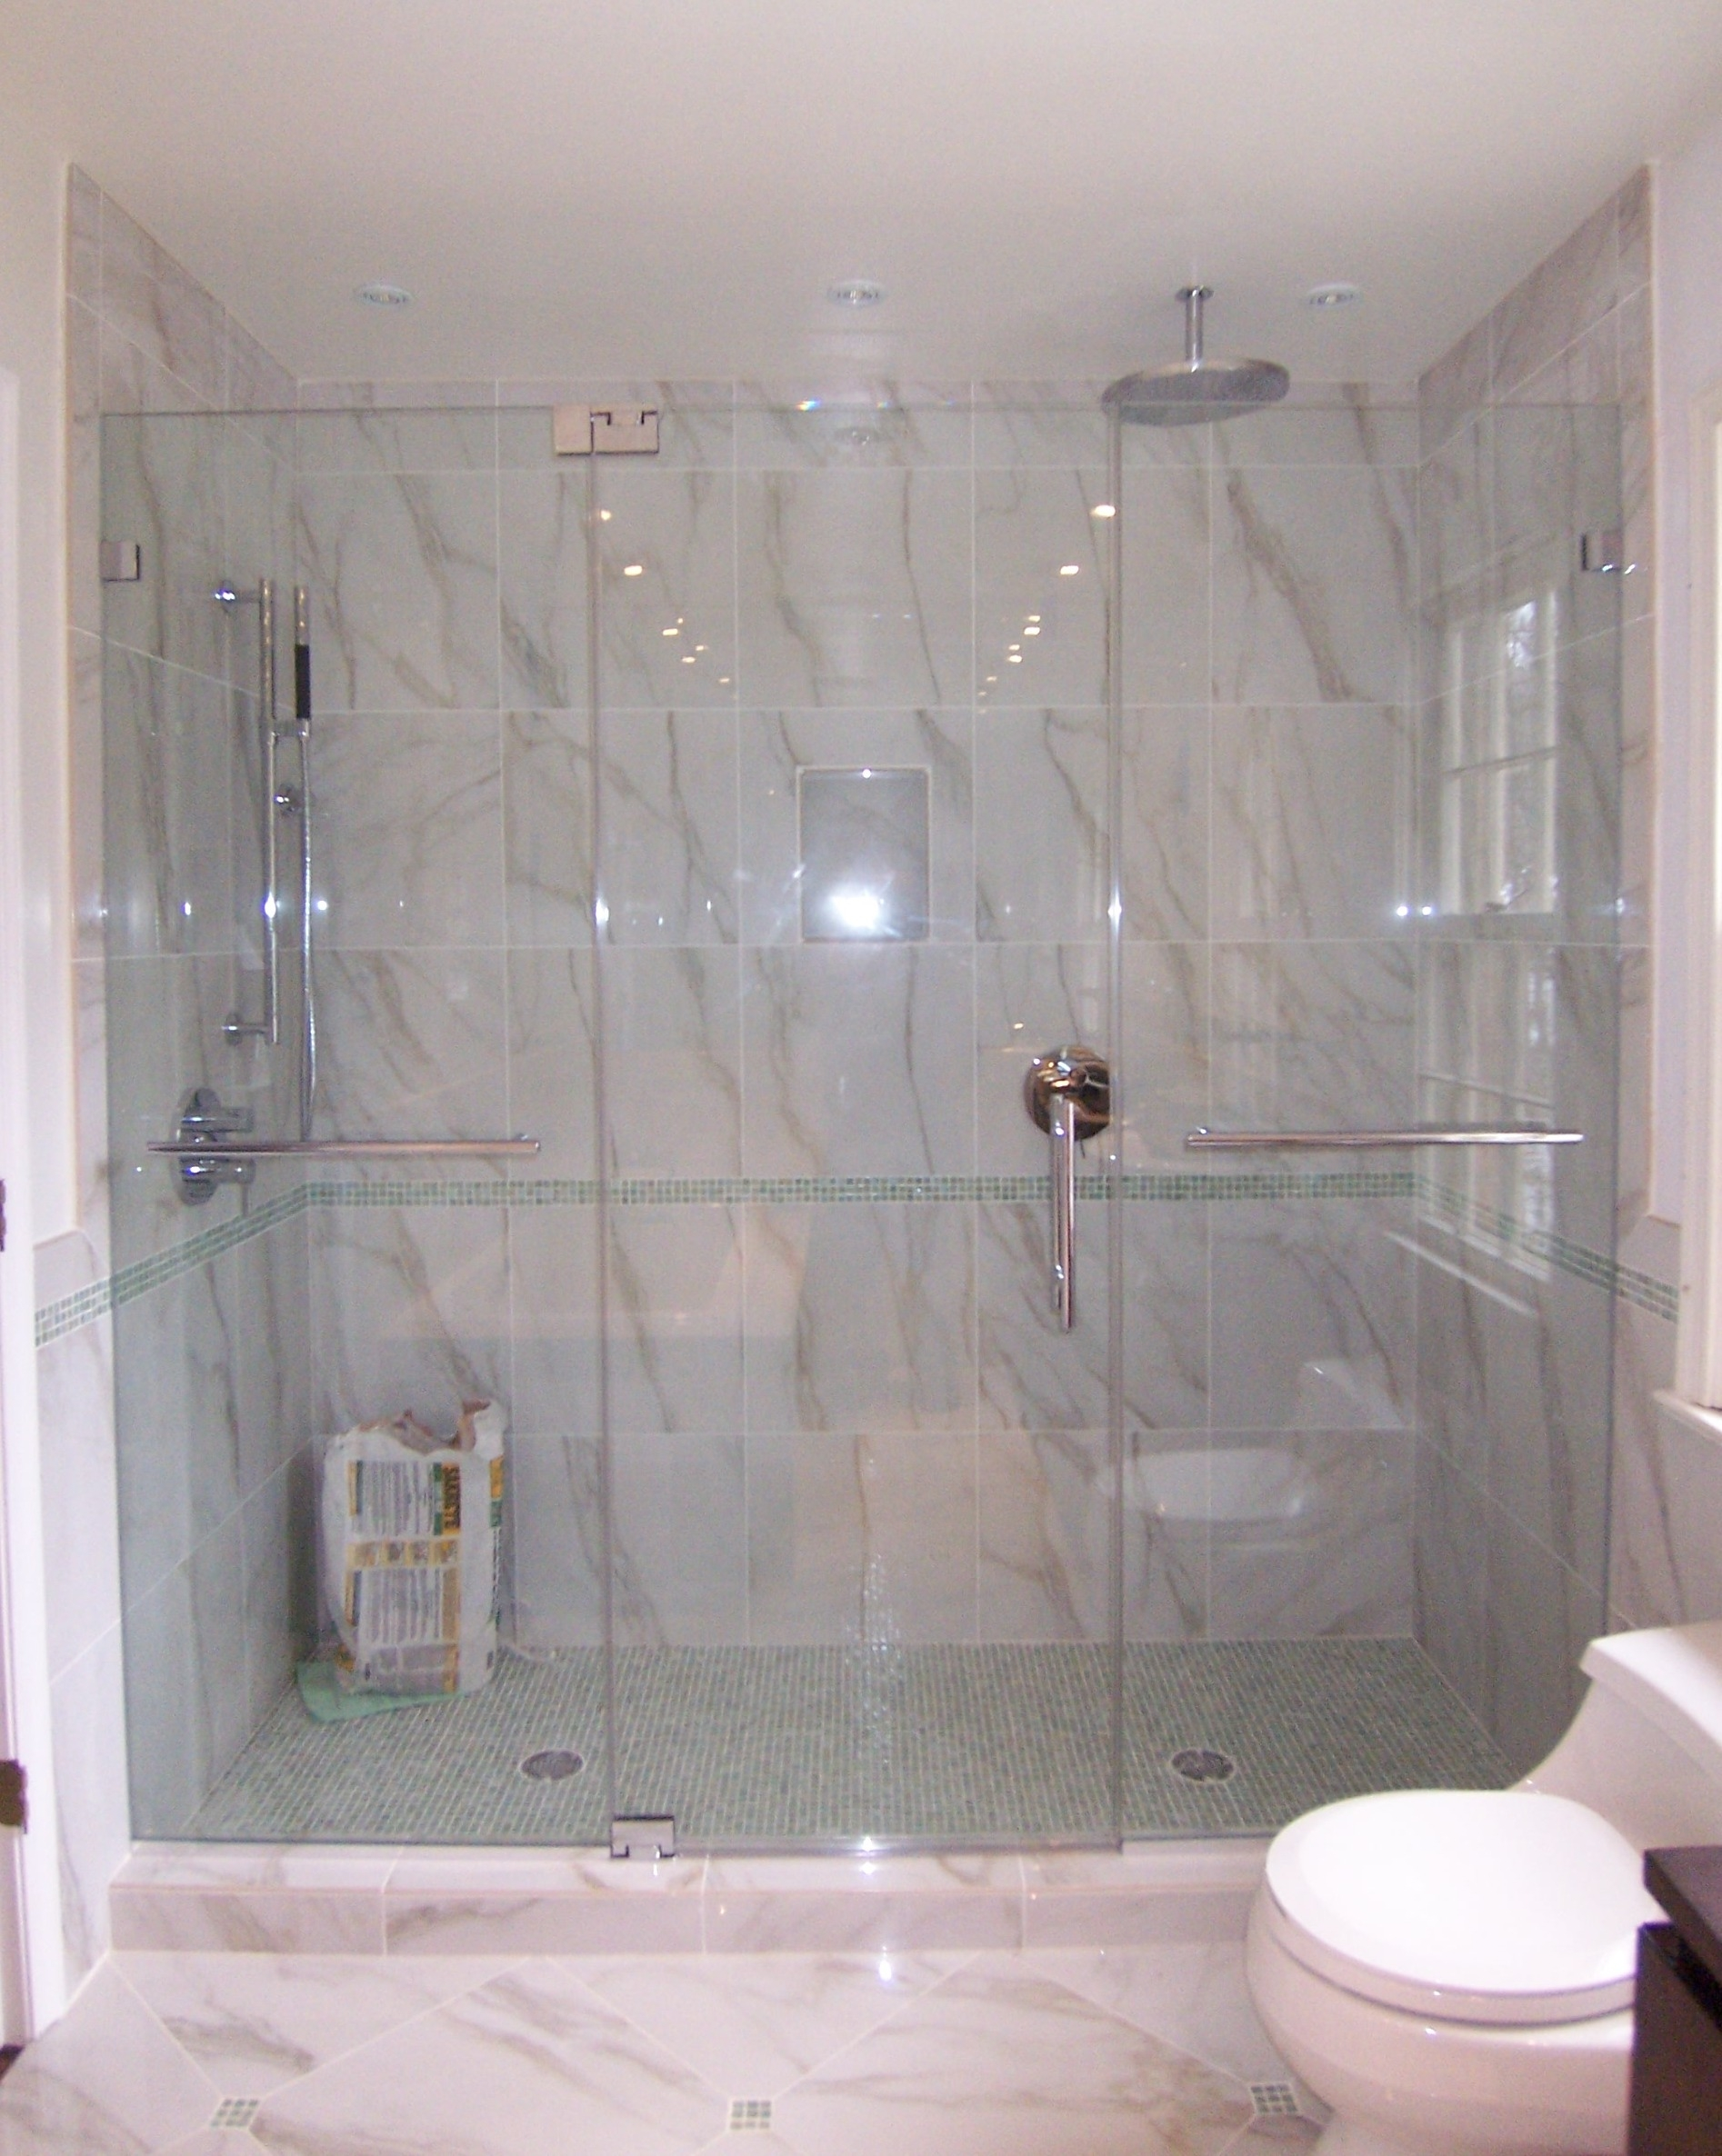 3 Panel Frameless Shower Door